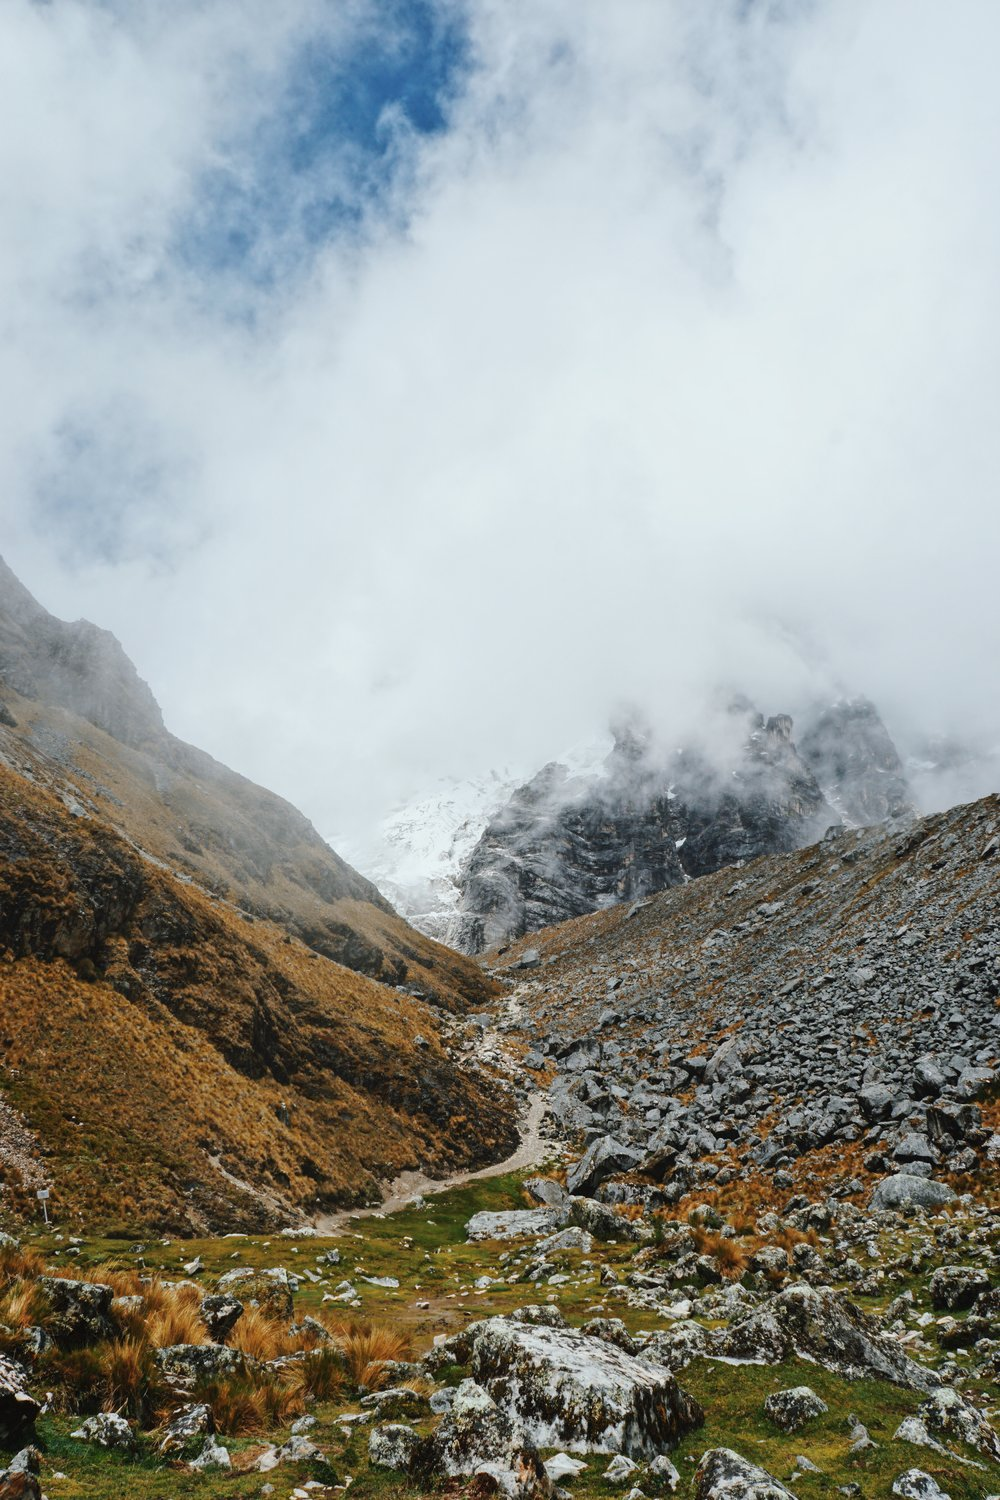 Catching glimpses of snow-capped mountains going over the Salkantay Pass.